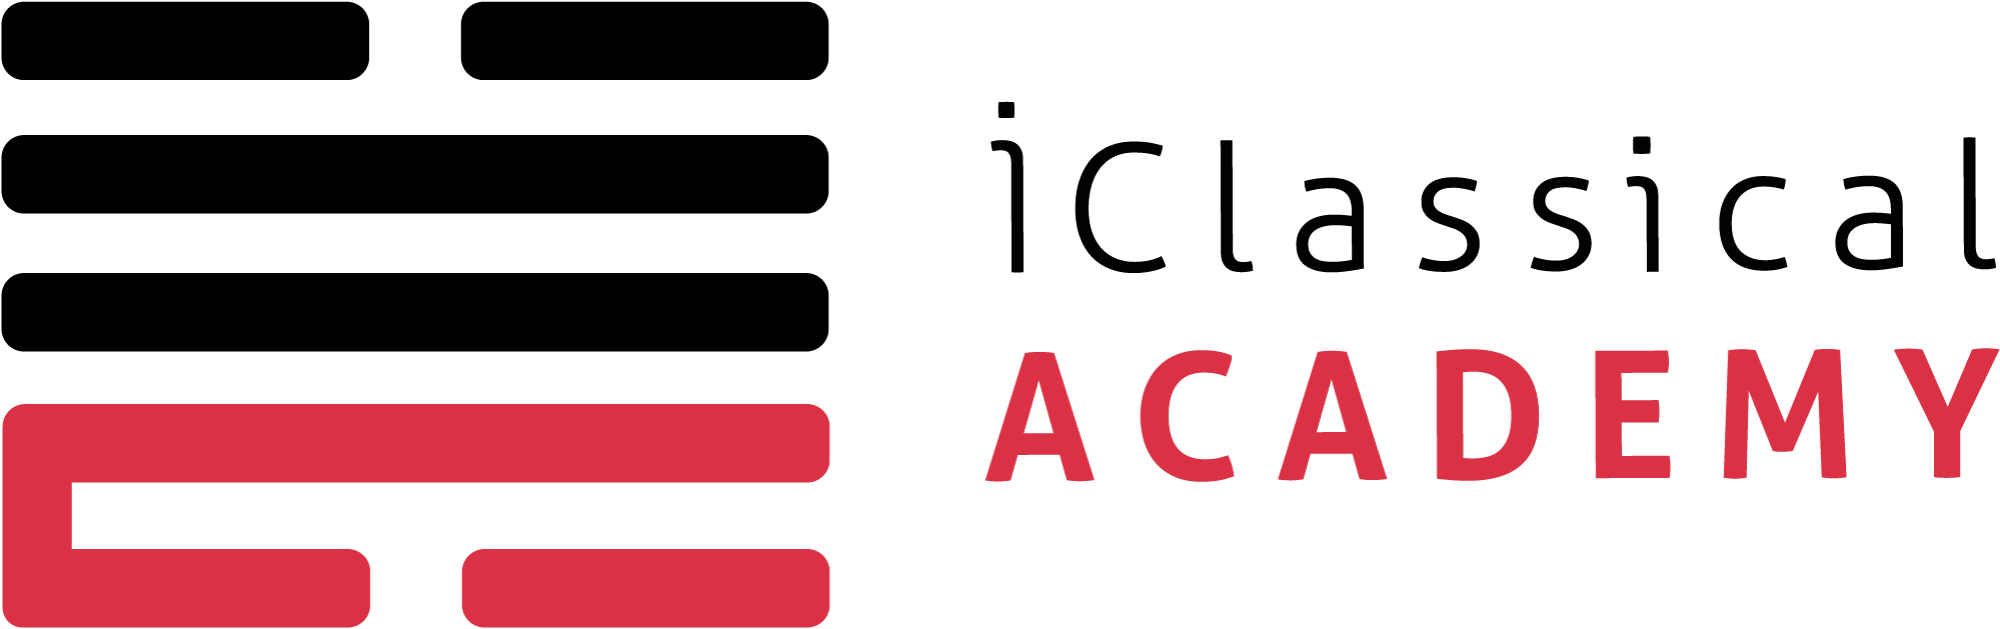 ica-logo.png